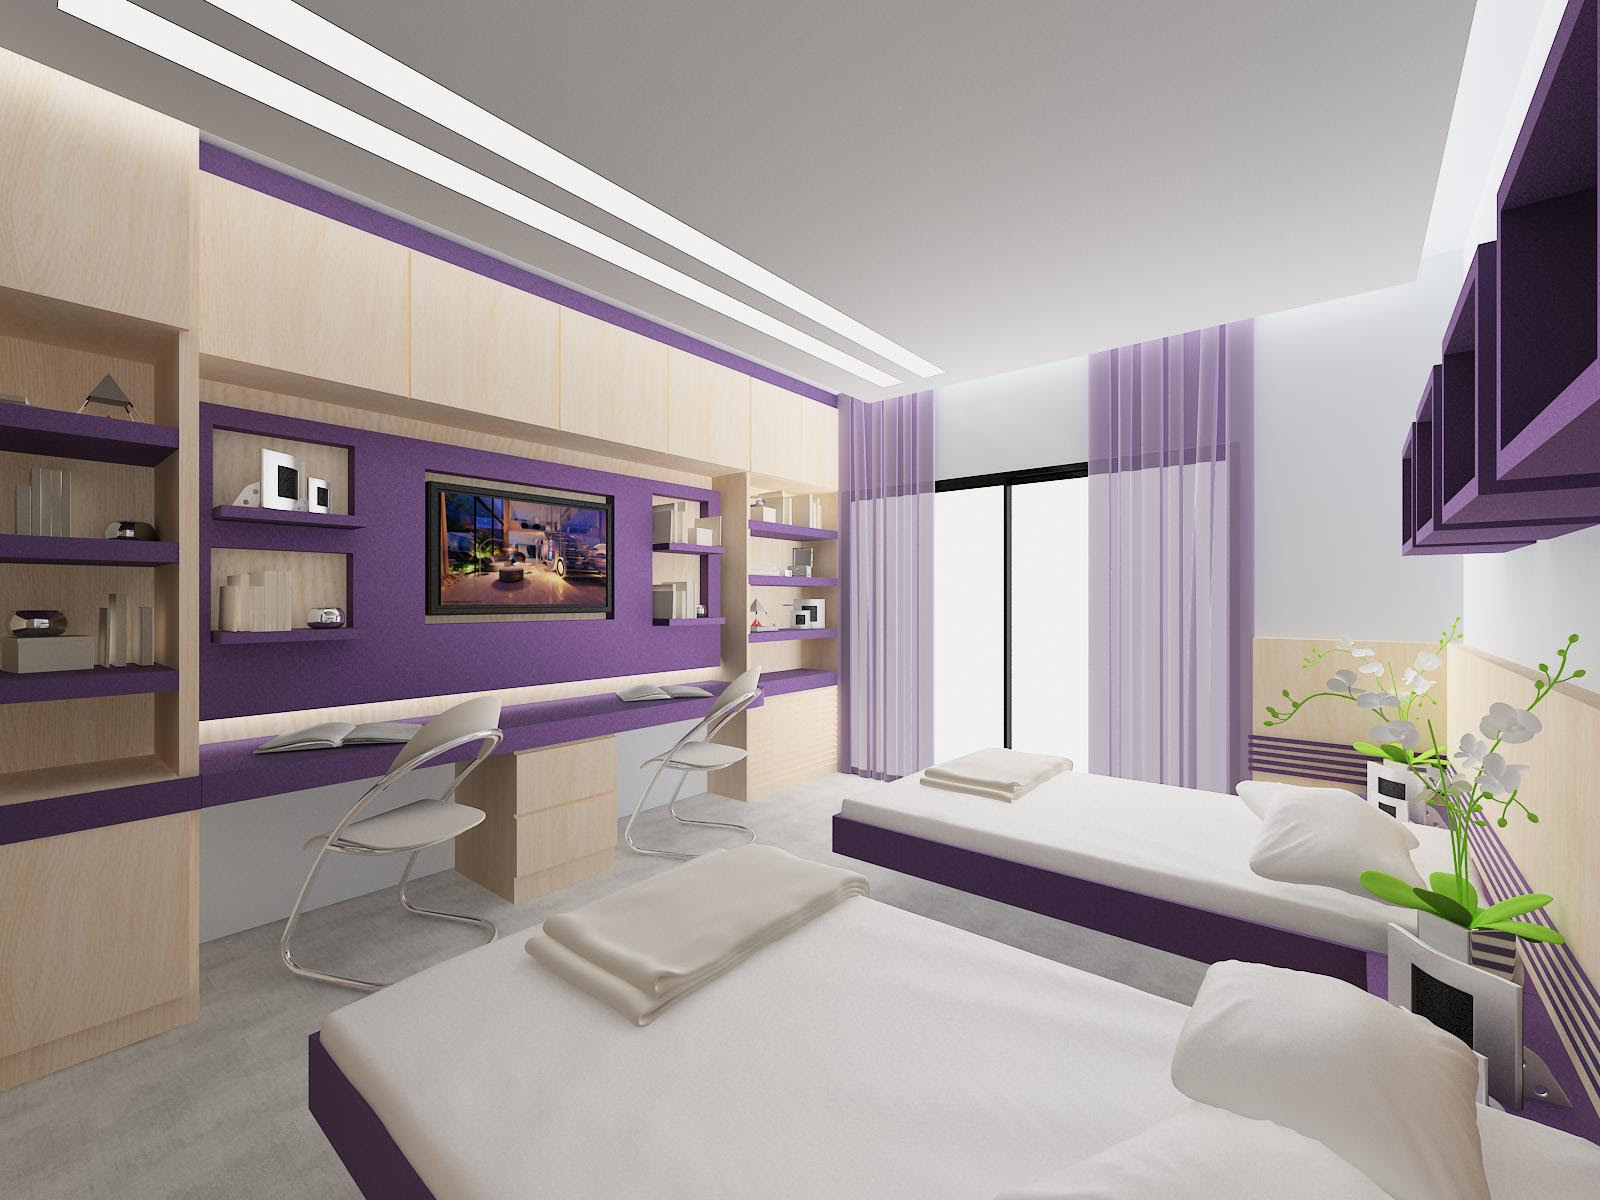 Young Girl Bedroom False Ceiling Design Home Designs For Bedrooms Set Toddler Girls Decorating Ideas Baby Small Real Teenage Twins Room Word In Script Apppie Org